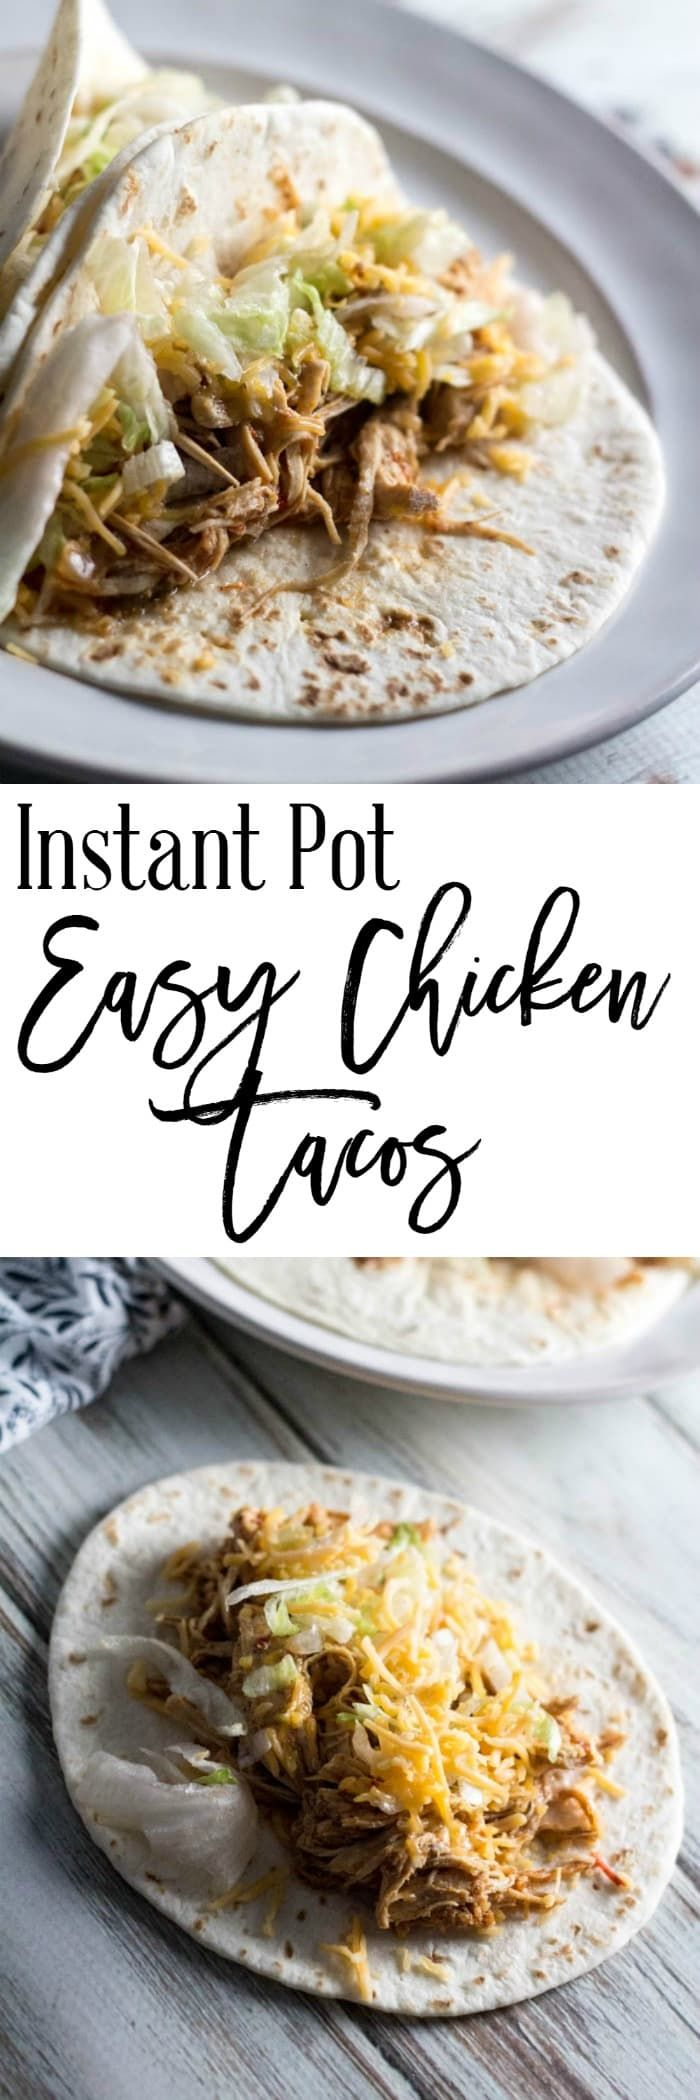 Instant Pot Easy Chicken Tacos - If you love tacos as much as I do, you need to try these Instant Pot easy chicken tacos recipe.  They are easy to make – only take about 20 minutes – and taste like they have been cooking all day long.  These are 11 SmartPoints per serving on Weight Watchers, 2 tacos filled with 1 cup of cooked chicken each. https://dashofherbs.com/instant-pot-easy-chicken-tacos/